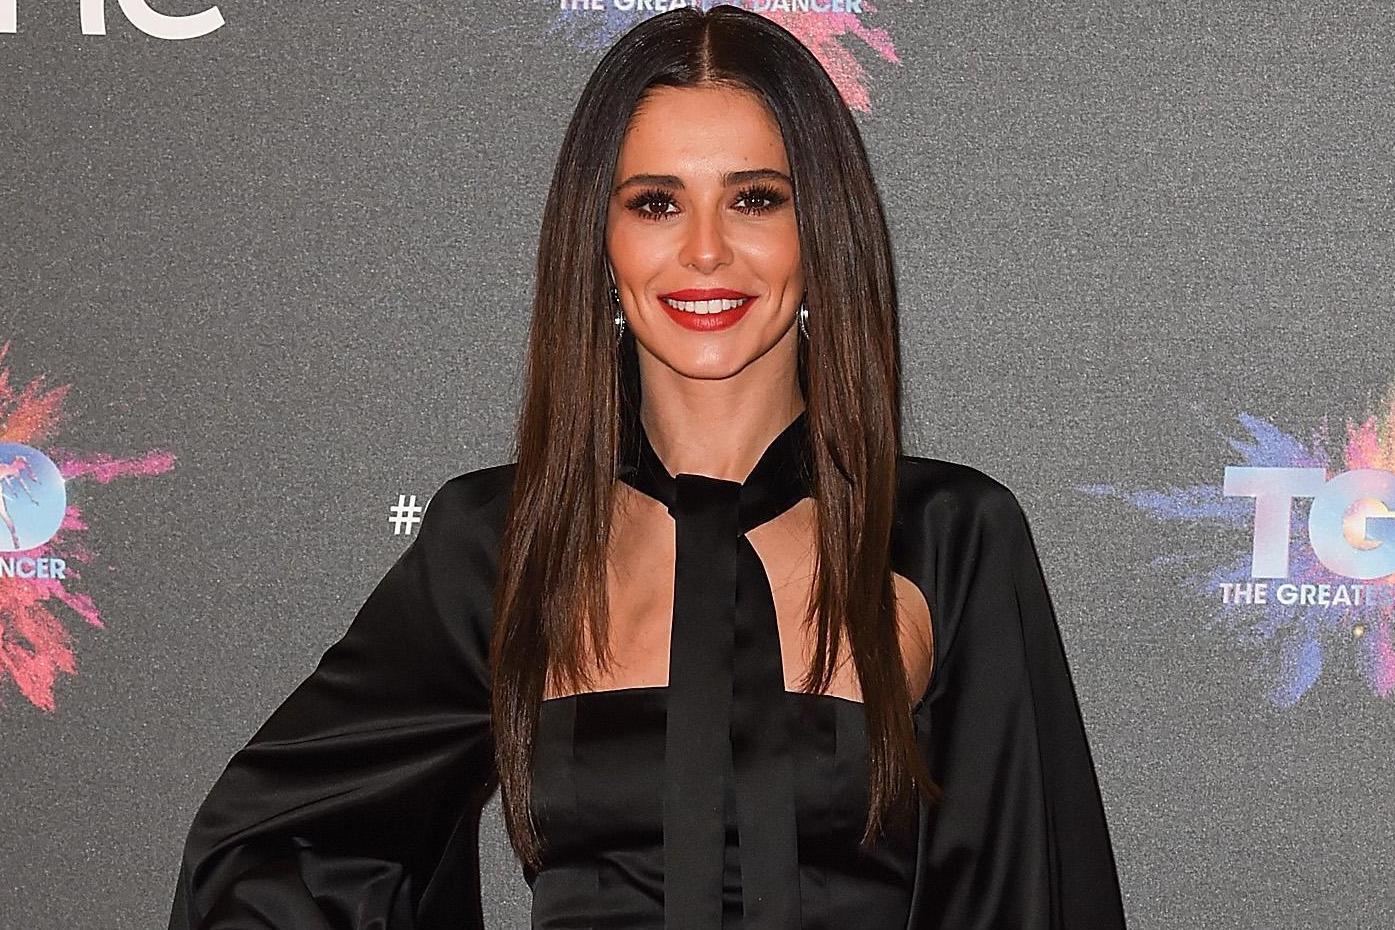 Cheryl reveals she has been undergoing therapy to undo 'bad thought patterns'